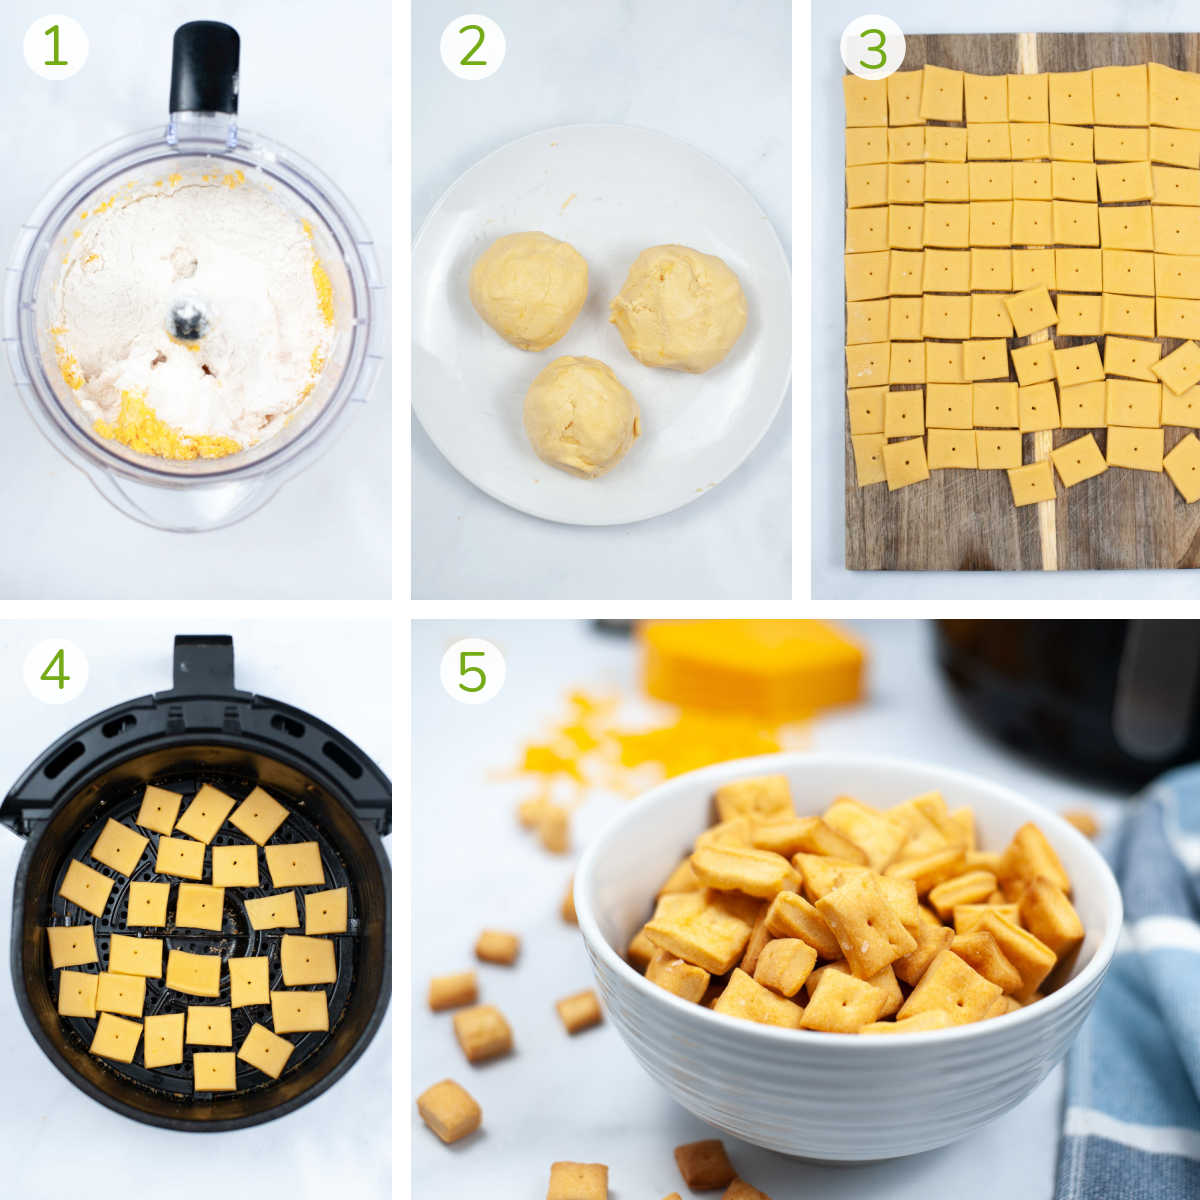 several process photos showing how to mix the ingredients in a food processor, rolling them into balls, flattening and then air frying to make cheez-its at home.